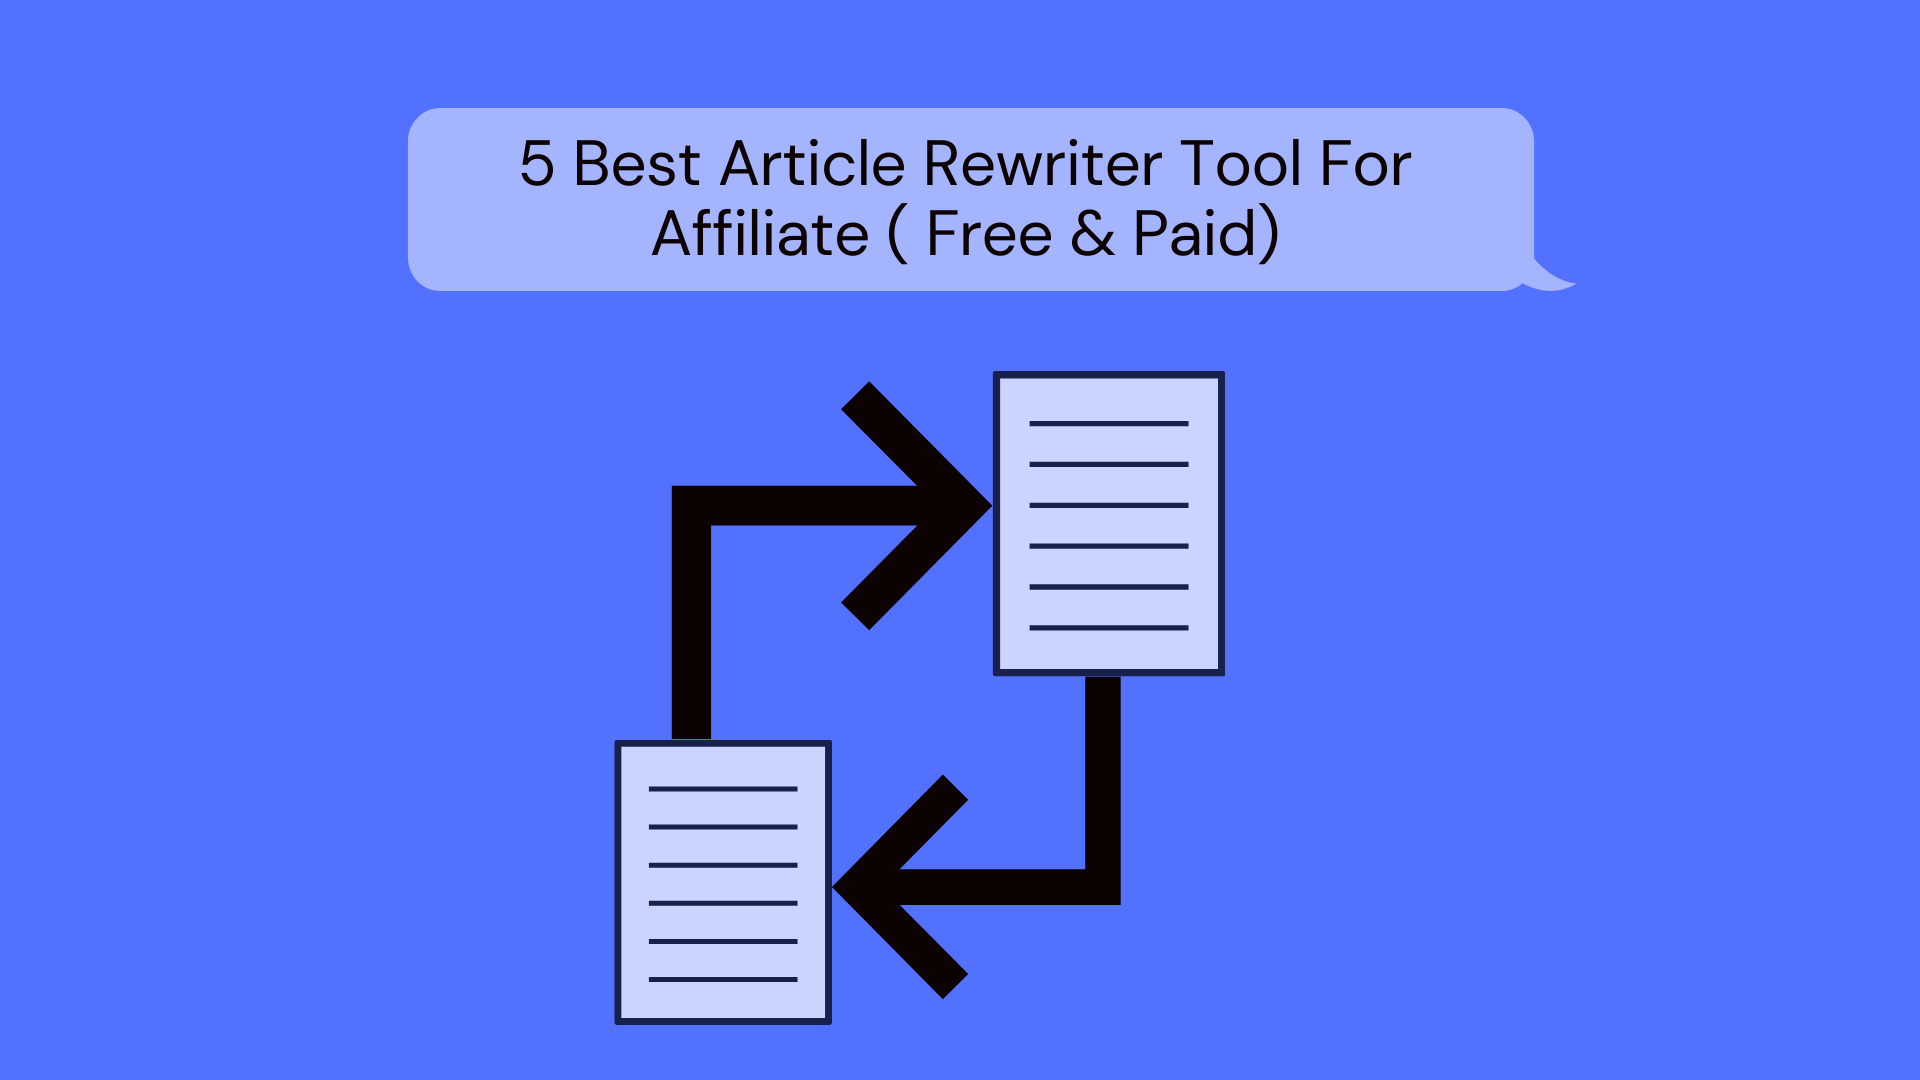 5 Best Article Rewriter Tool For Affiliate ( Free & Paid)